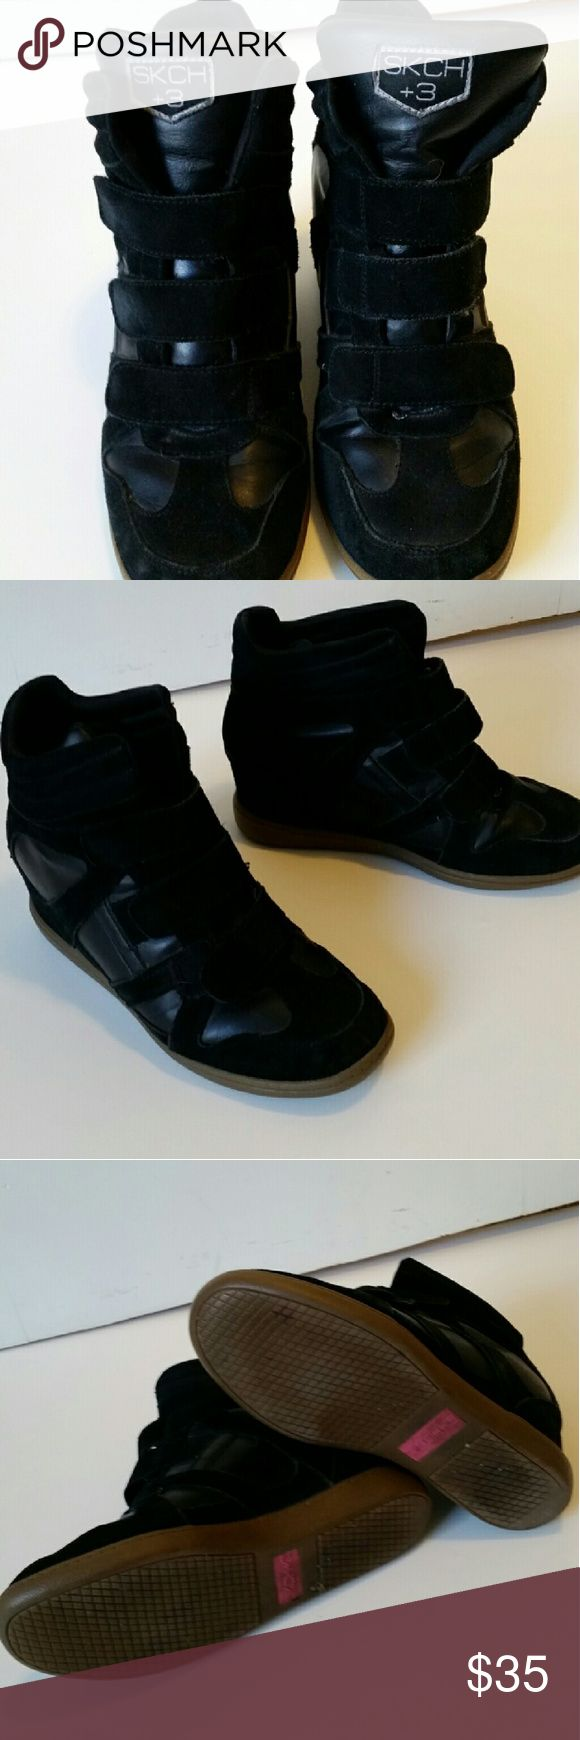 Skechers S3 Sneaker Wedges Excellent used condition as seen in photos. Skechers Shoes Wedges